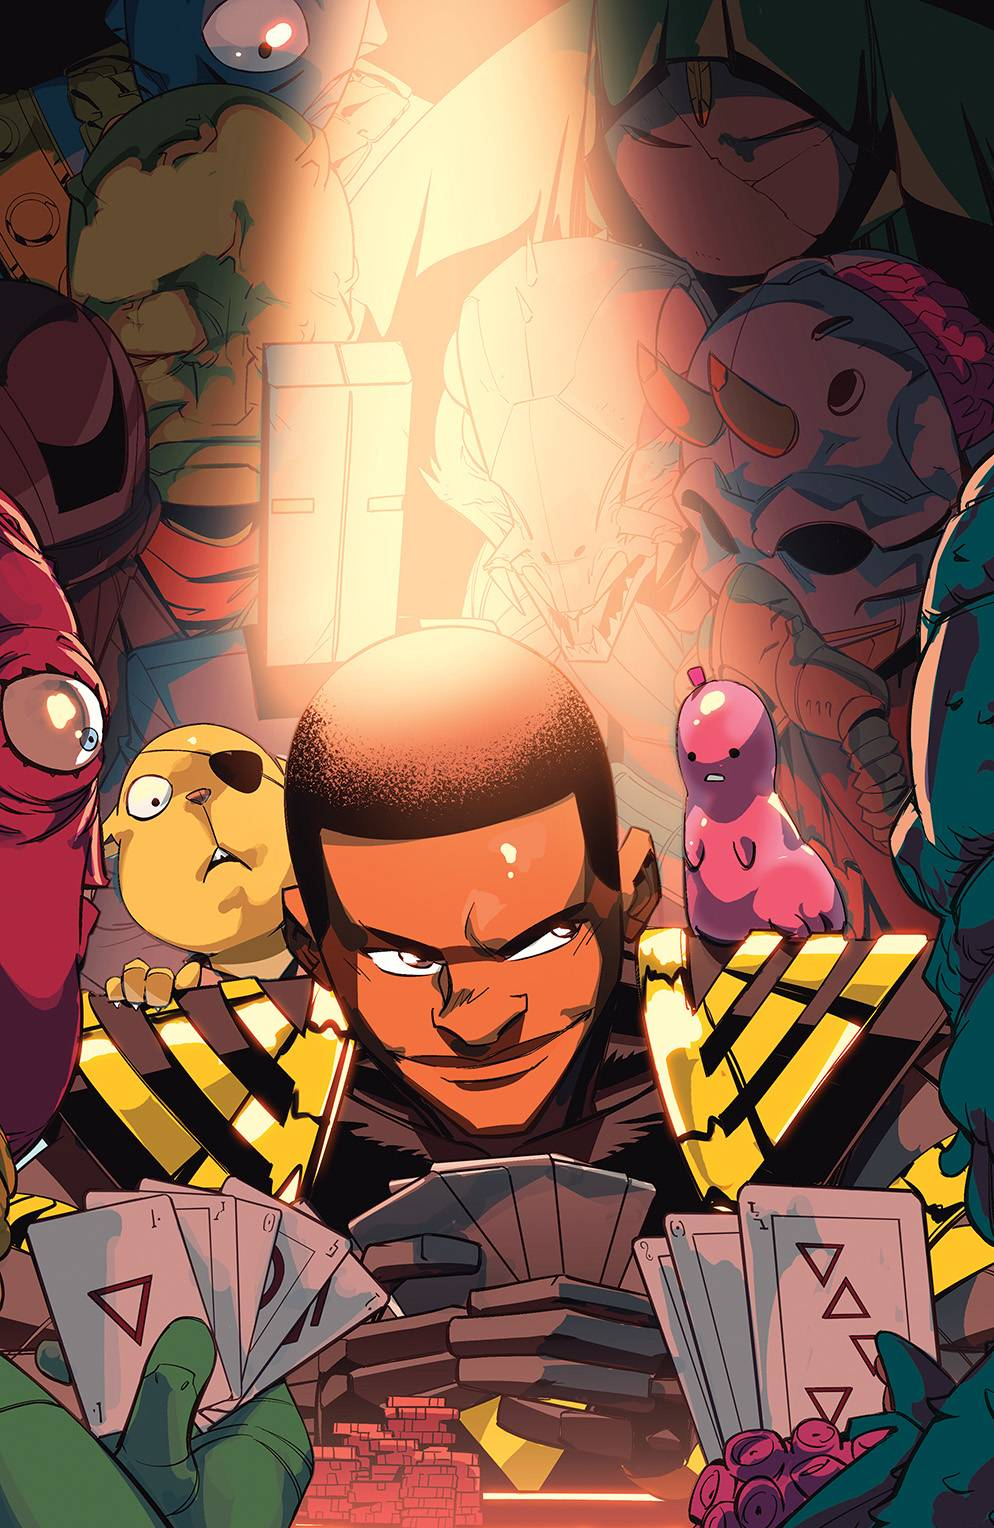 STL180047 ComicList Previews: POWER RANGERS #5